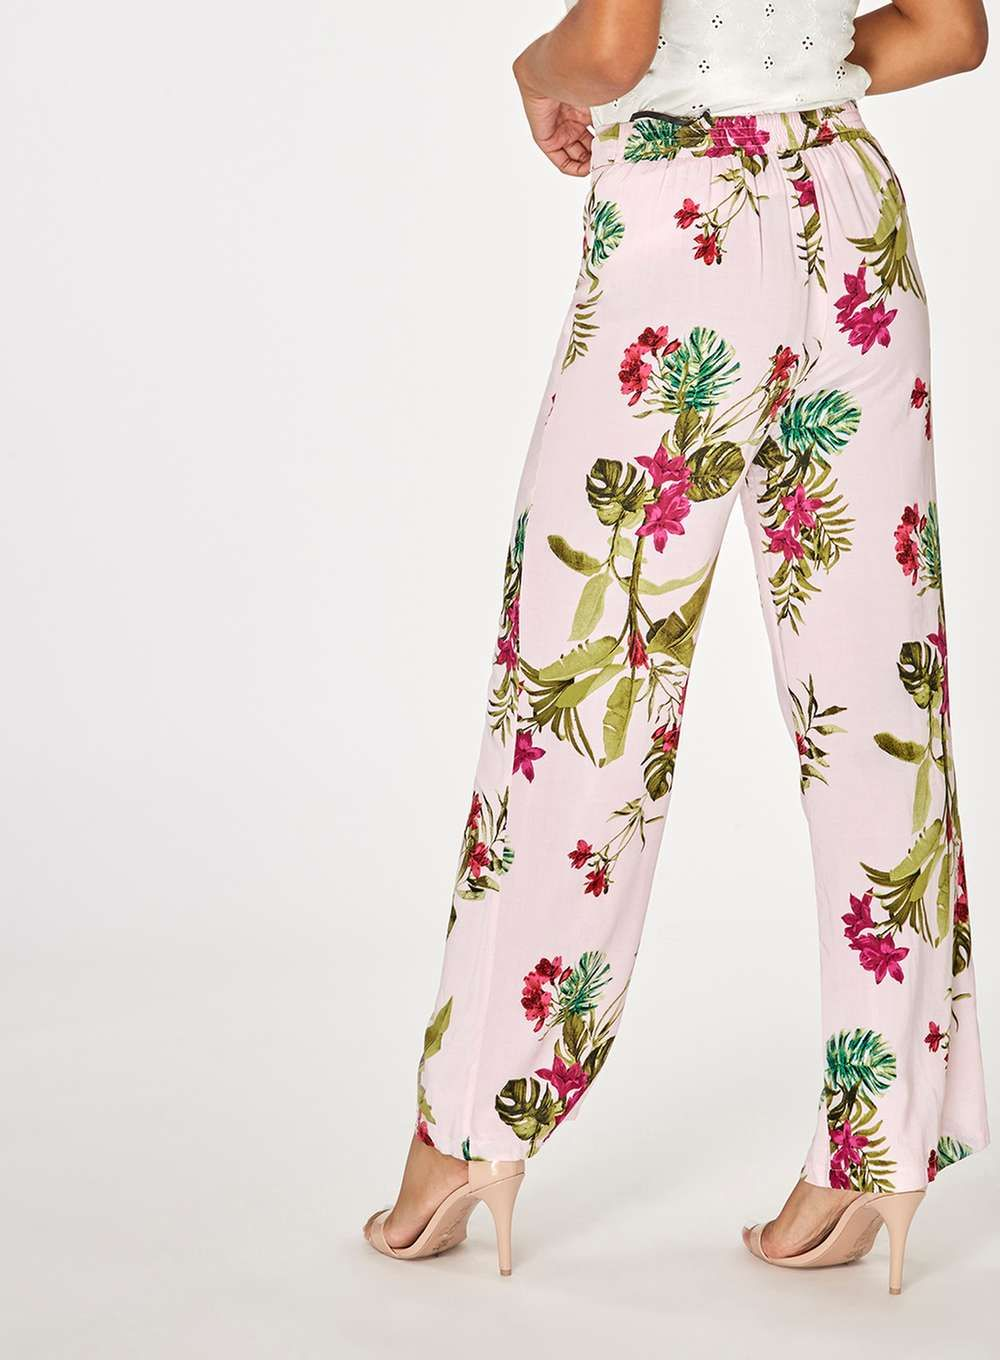 Footlocker Dorothy Perkins Womens Palm Print Palazzo Trousers- Cheap Sale With Paypal Low Cost Cheap Price Outlet Release Dates MIrAb